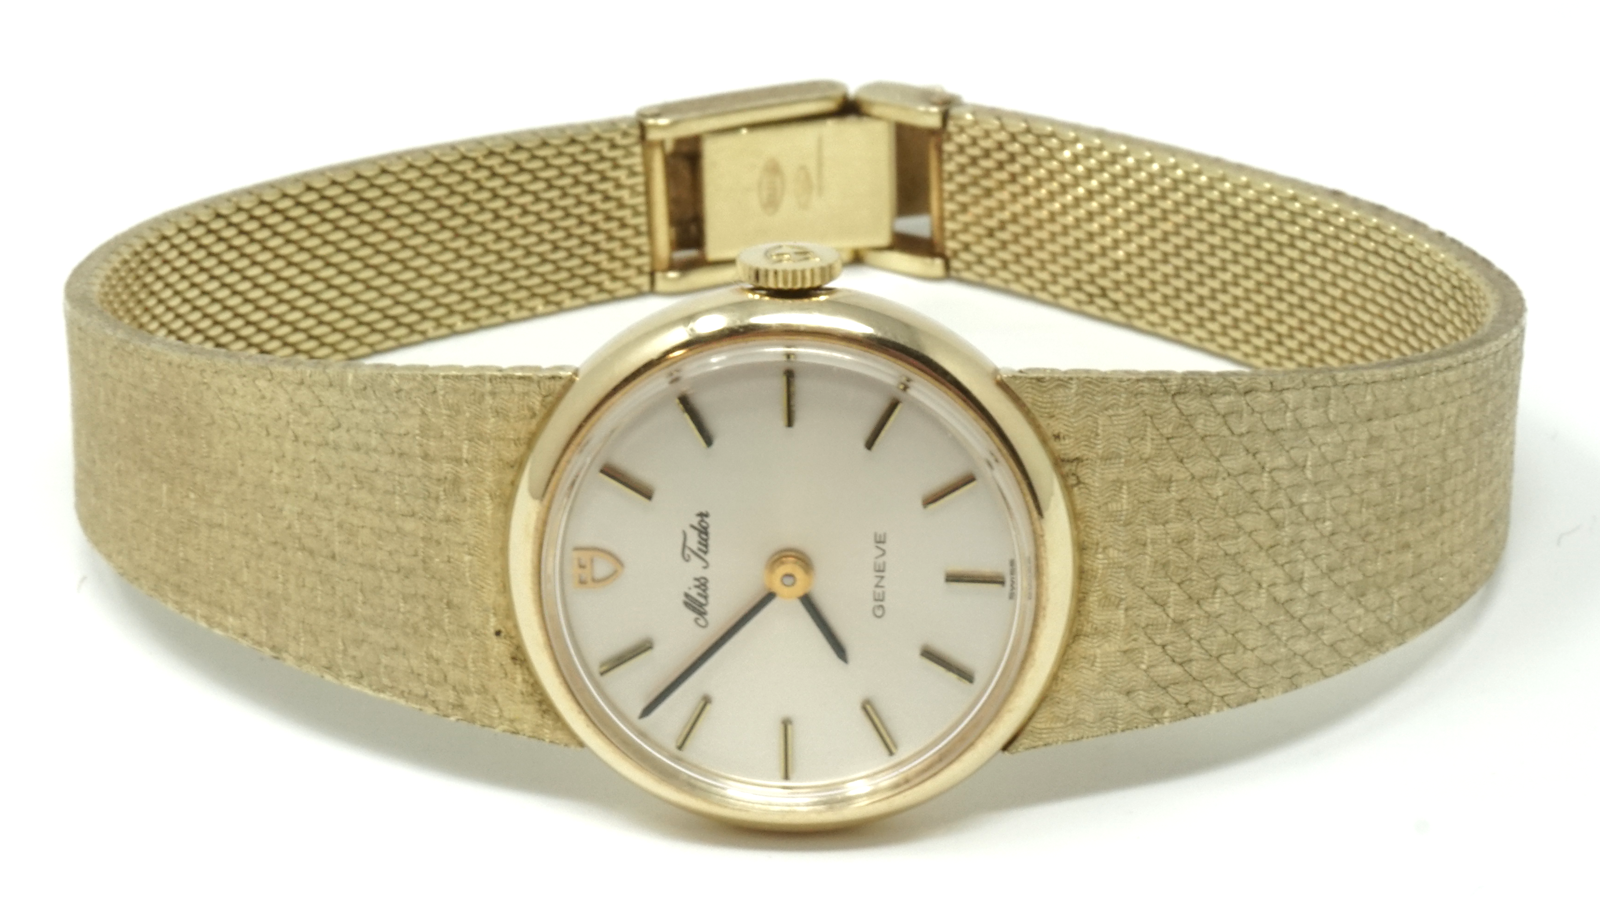 Vintage Rolex Miss Tudor ladies 14k gold watch